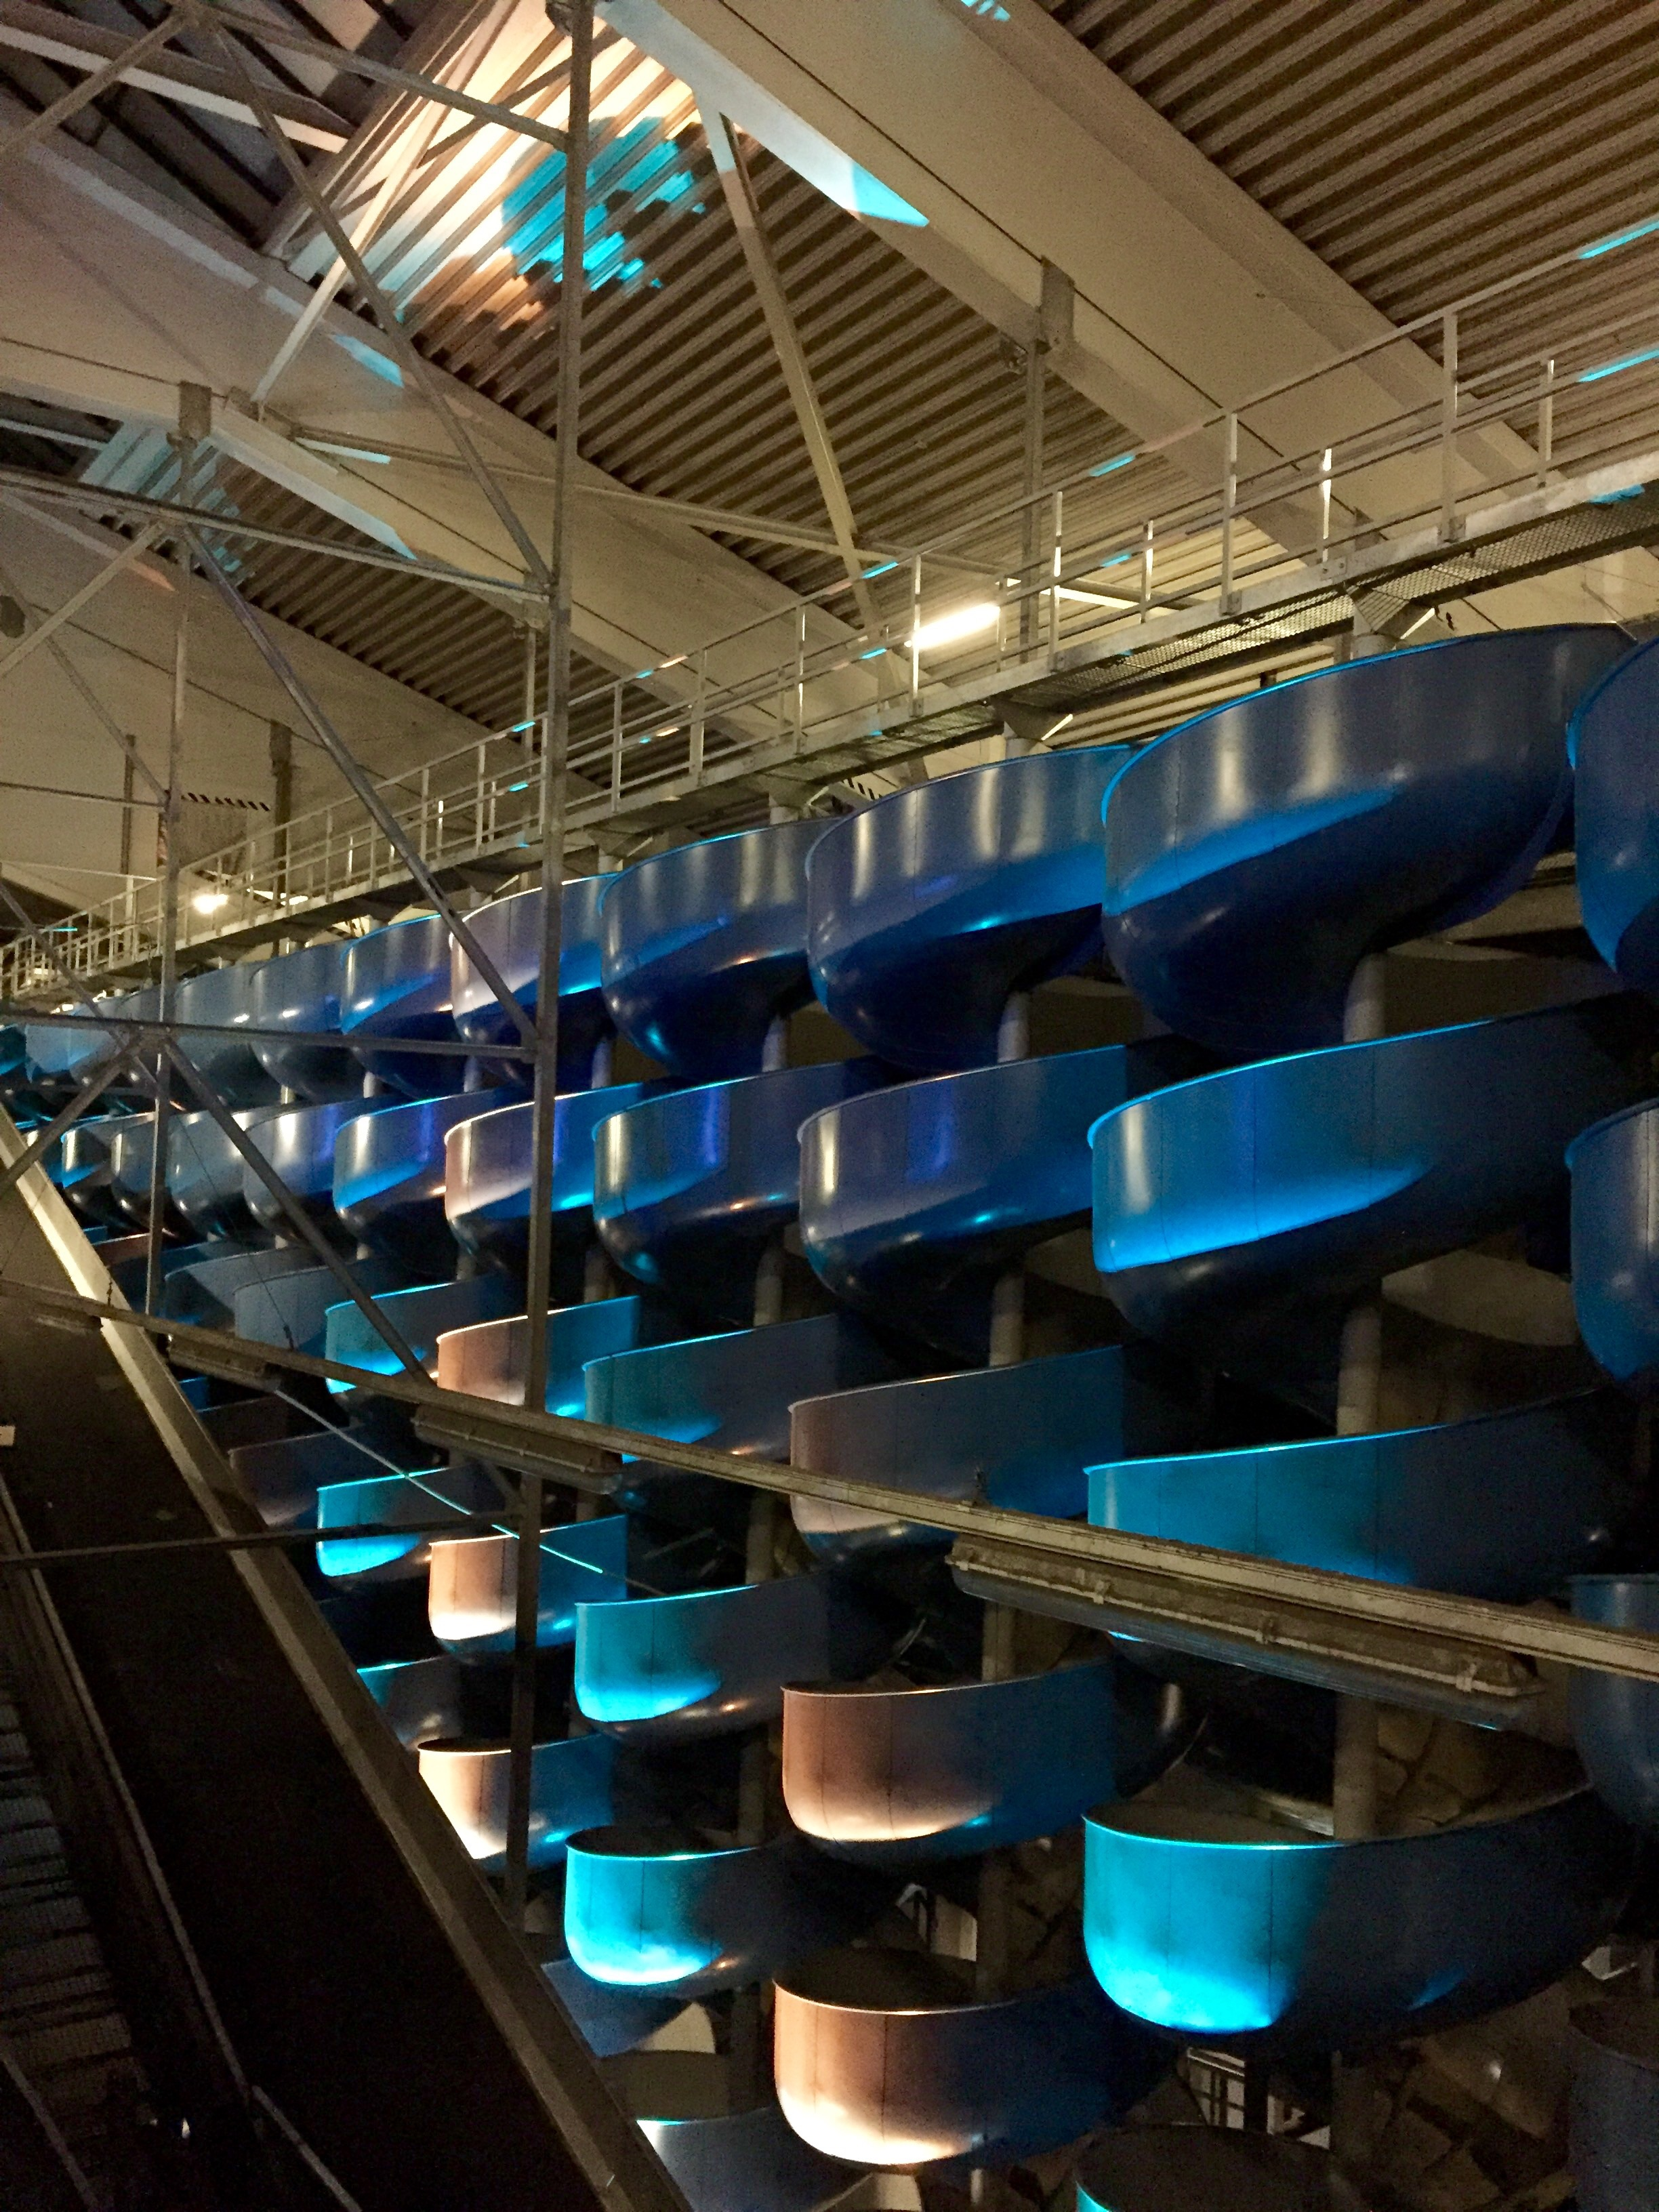 Spiral Falls - old package chutes in the vast sprawling cement playground that is Post City, a main location for the Ars Electronica festival, in an old postal sorting and transportation warehouse near the main station. The picture is missing the sound installation of rumbling bass and various sonic materials tumbling down the chutes.